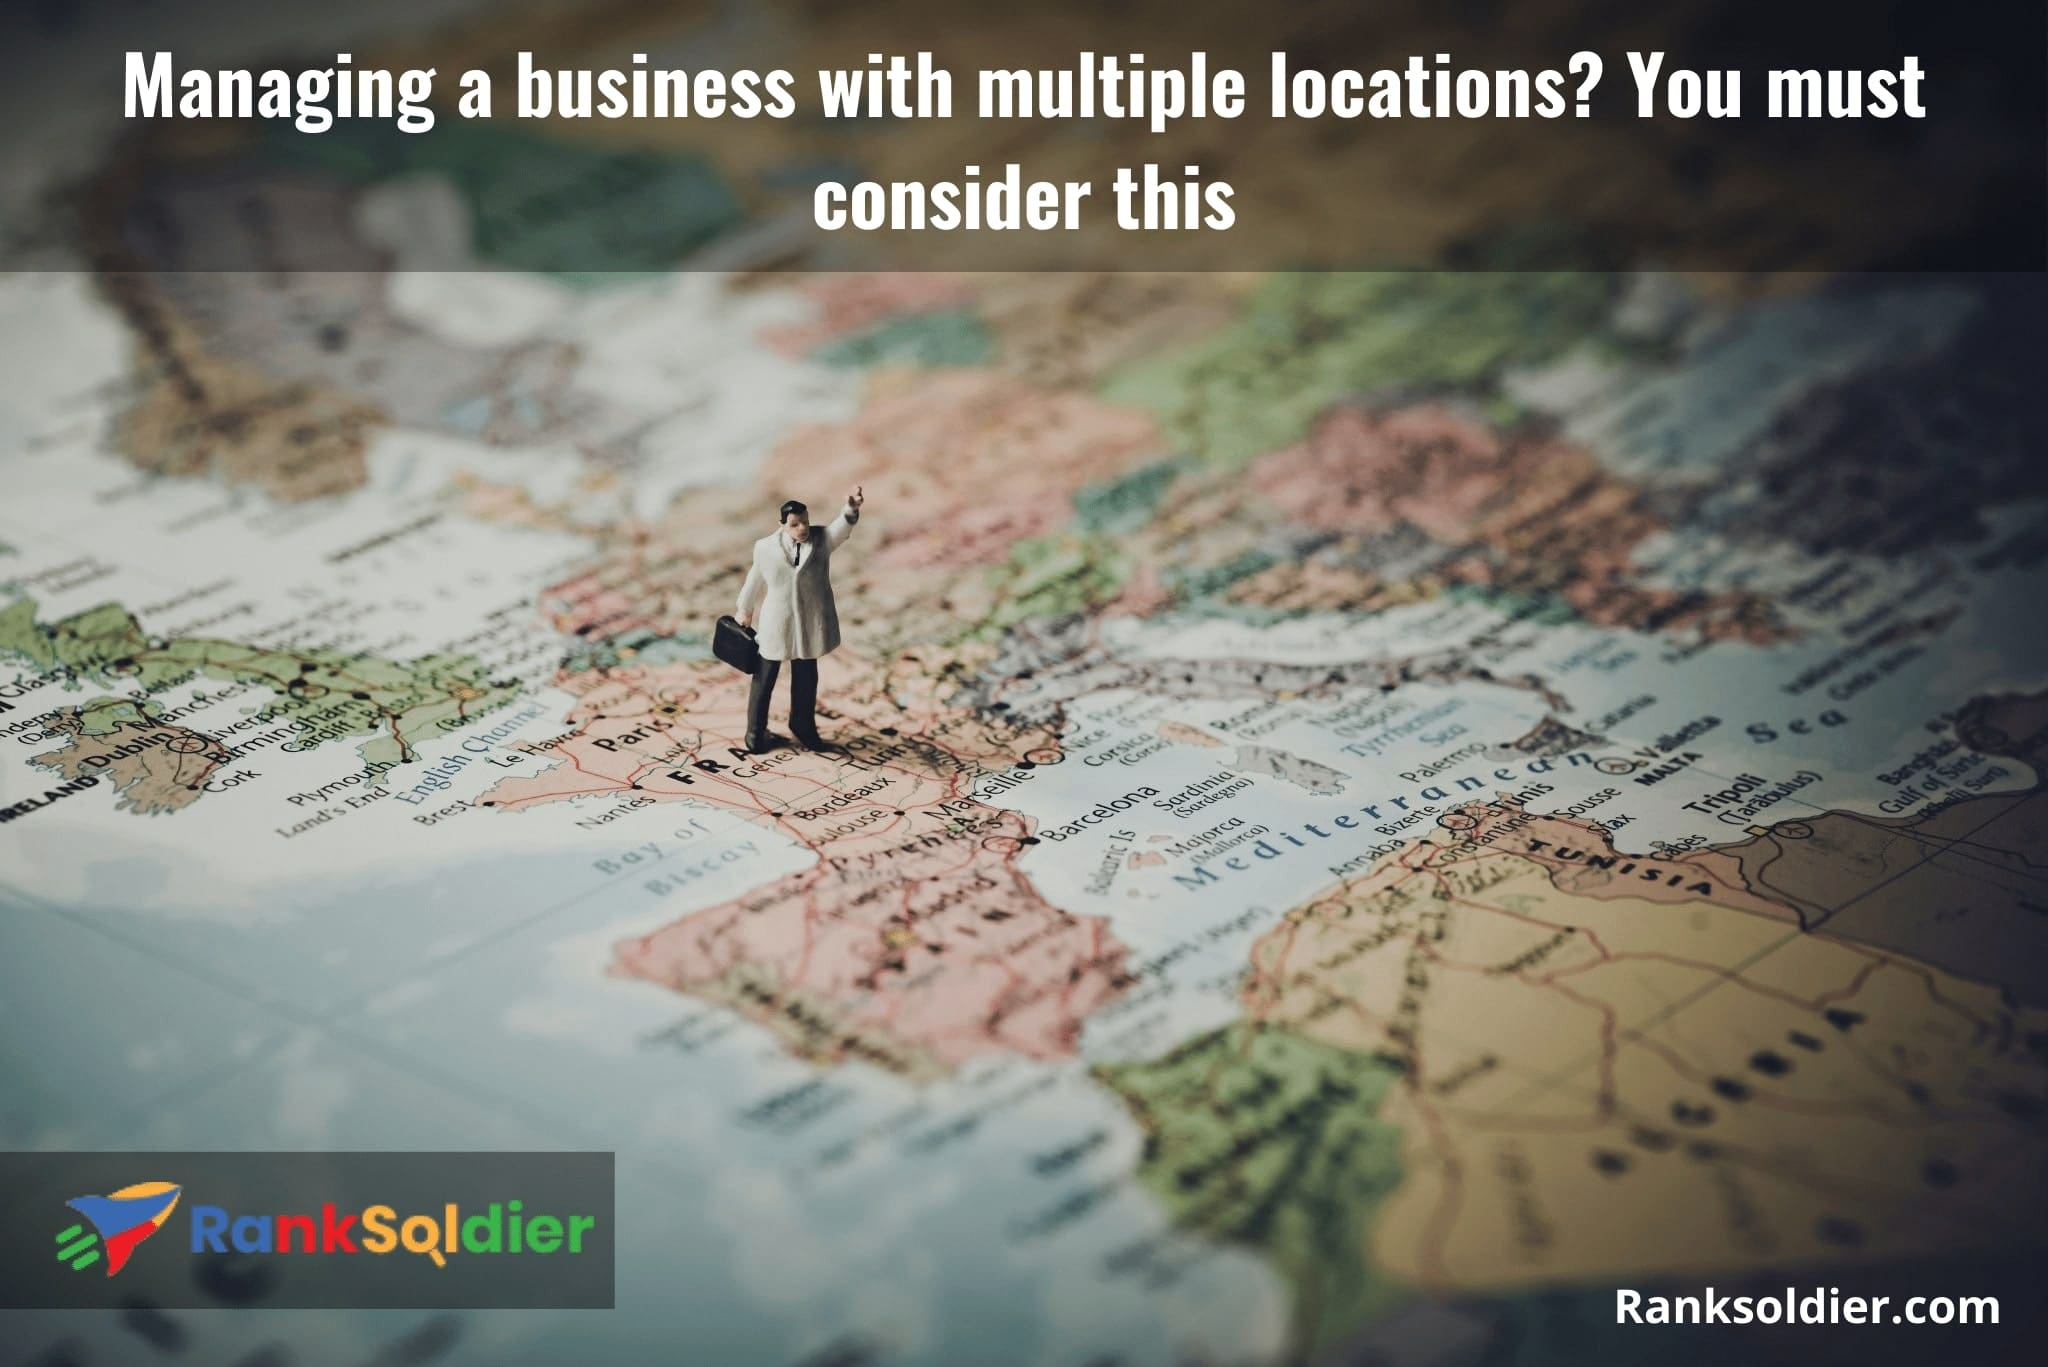 Managing a business with multiple locations? You must consider this